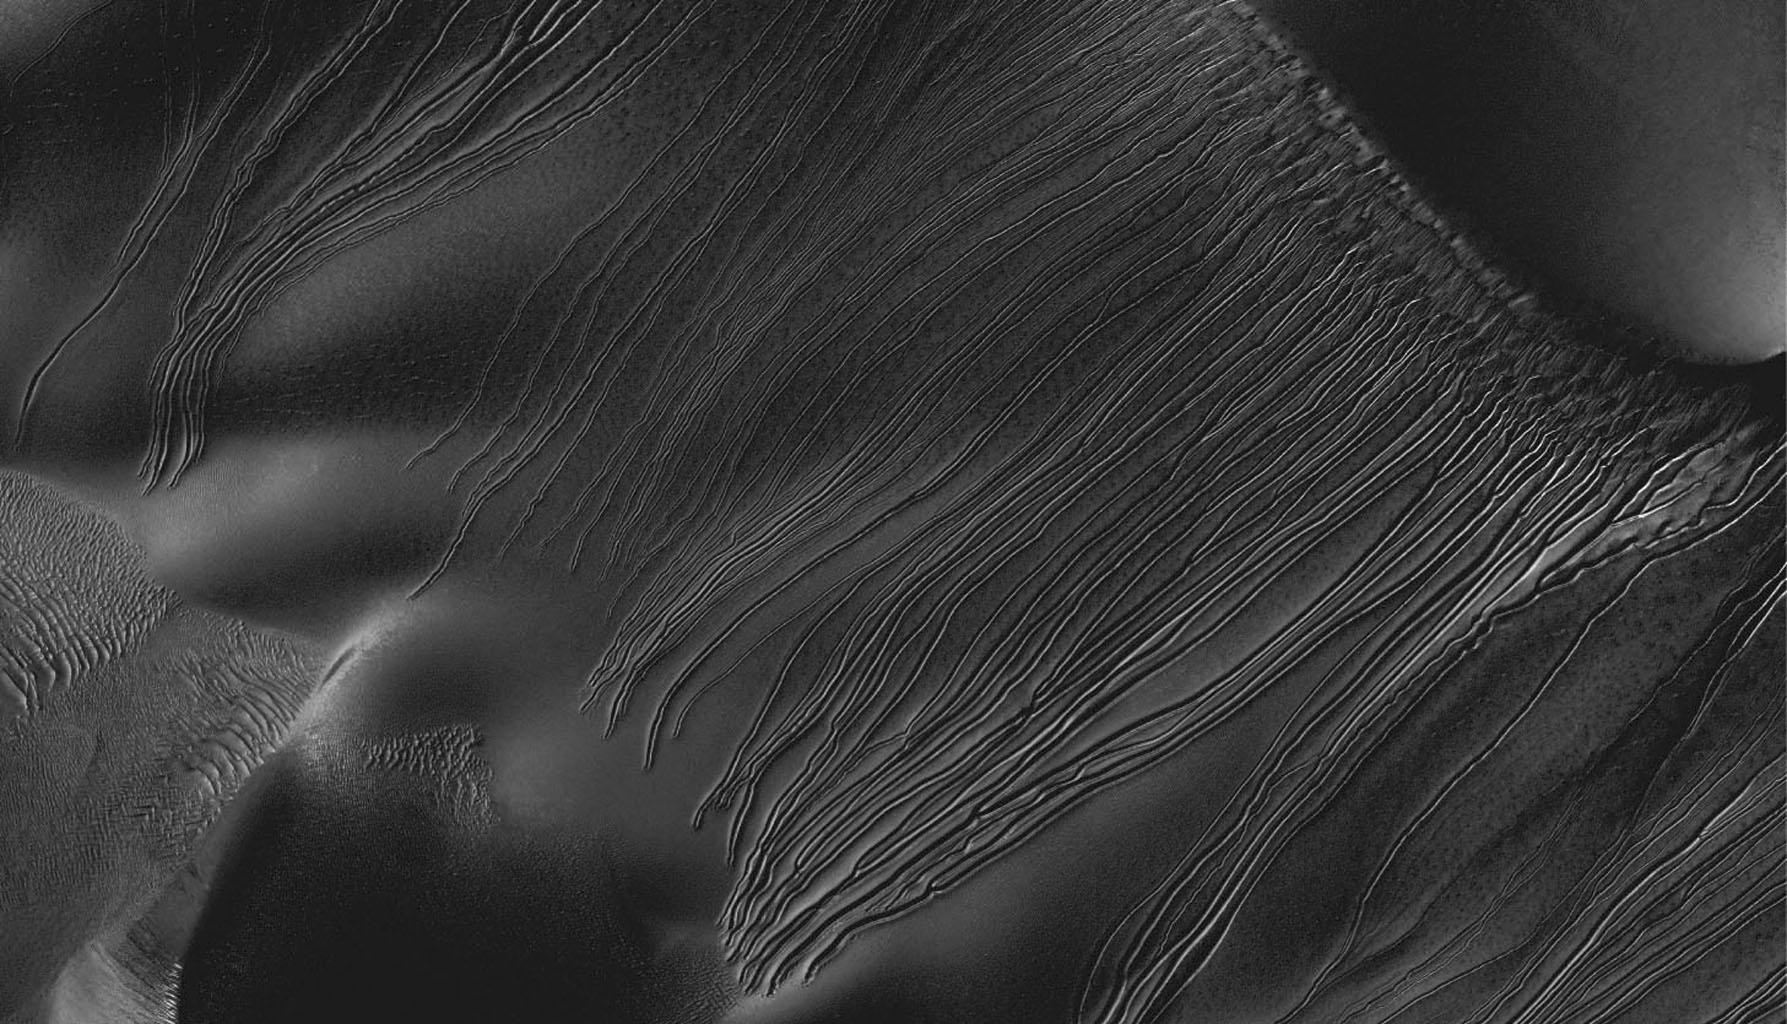 There Are Stick Figures Etched On Mars' Rocks